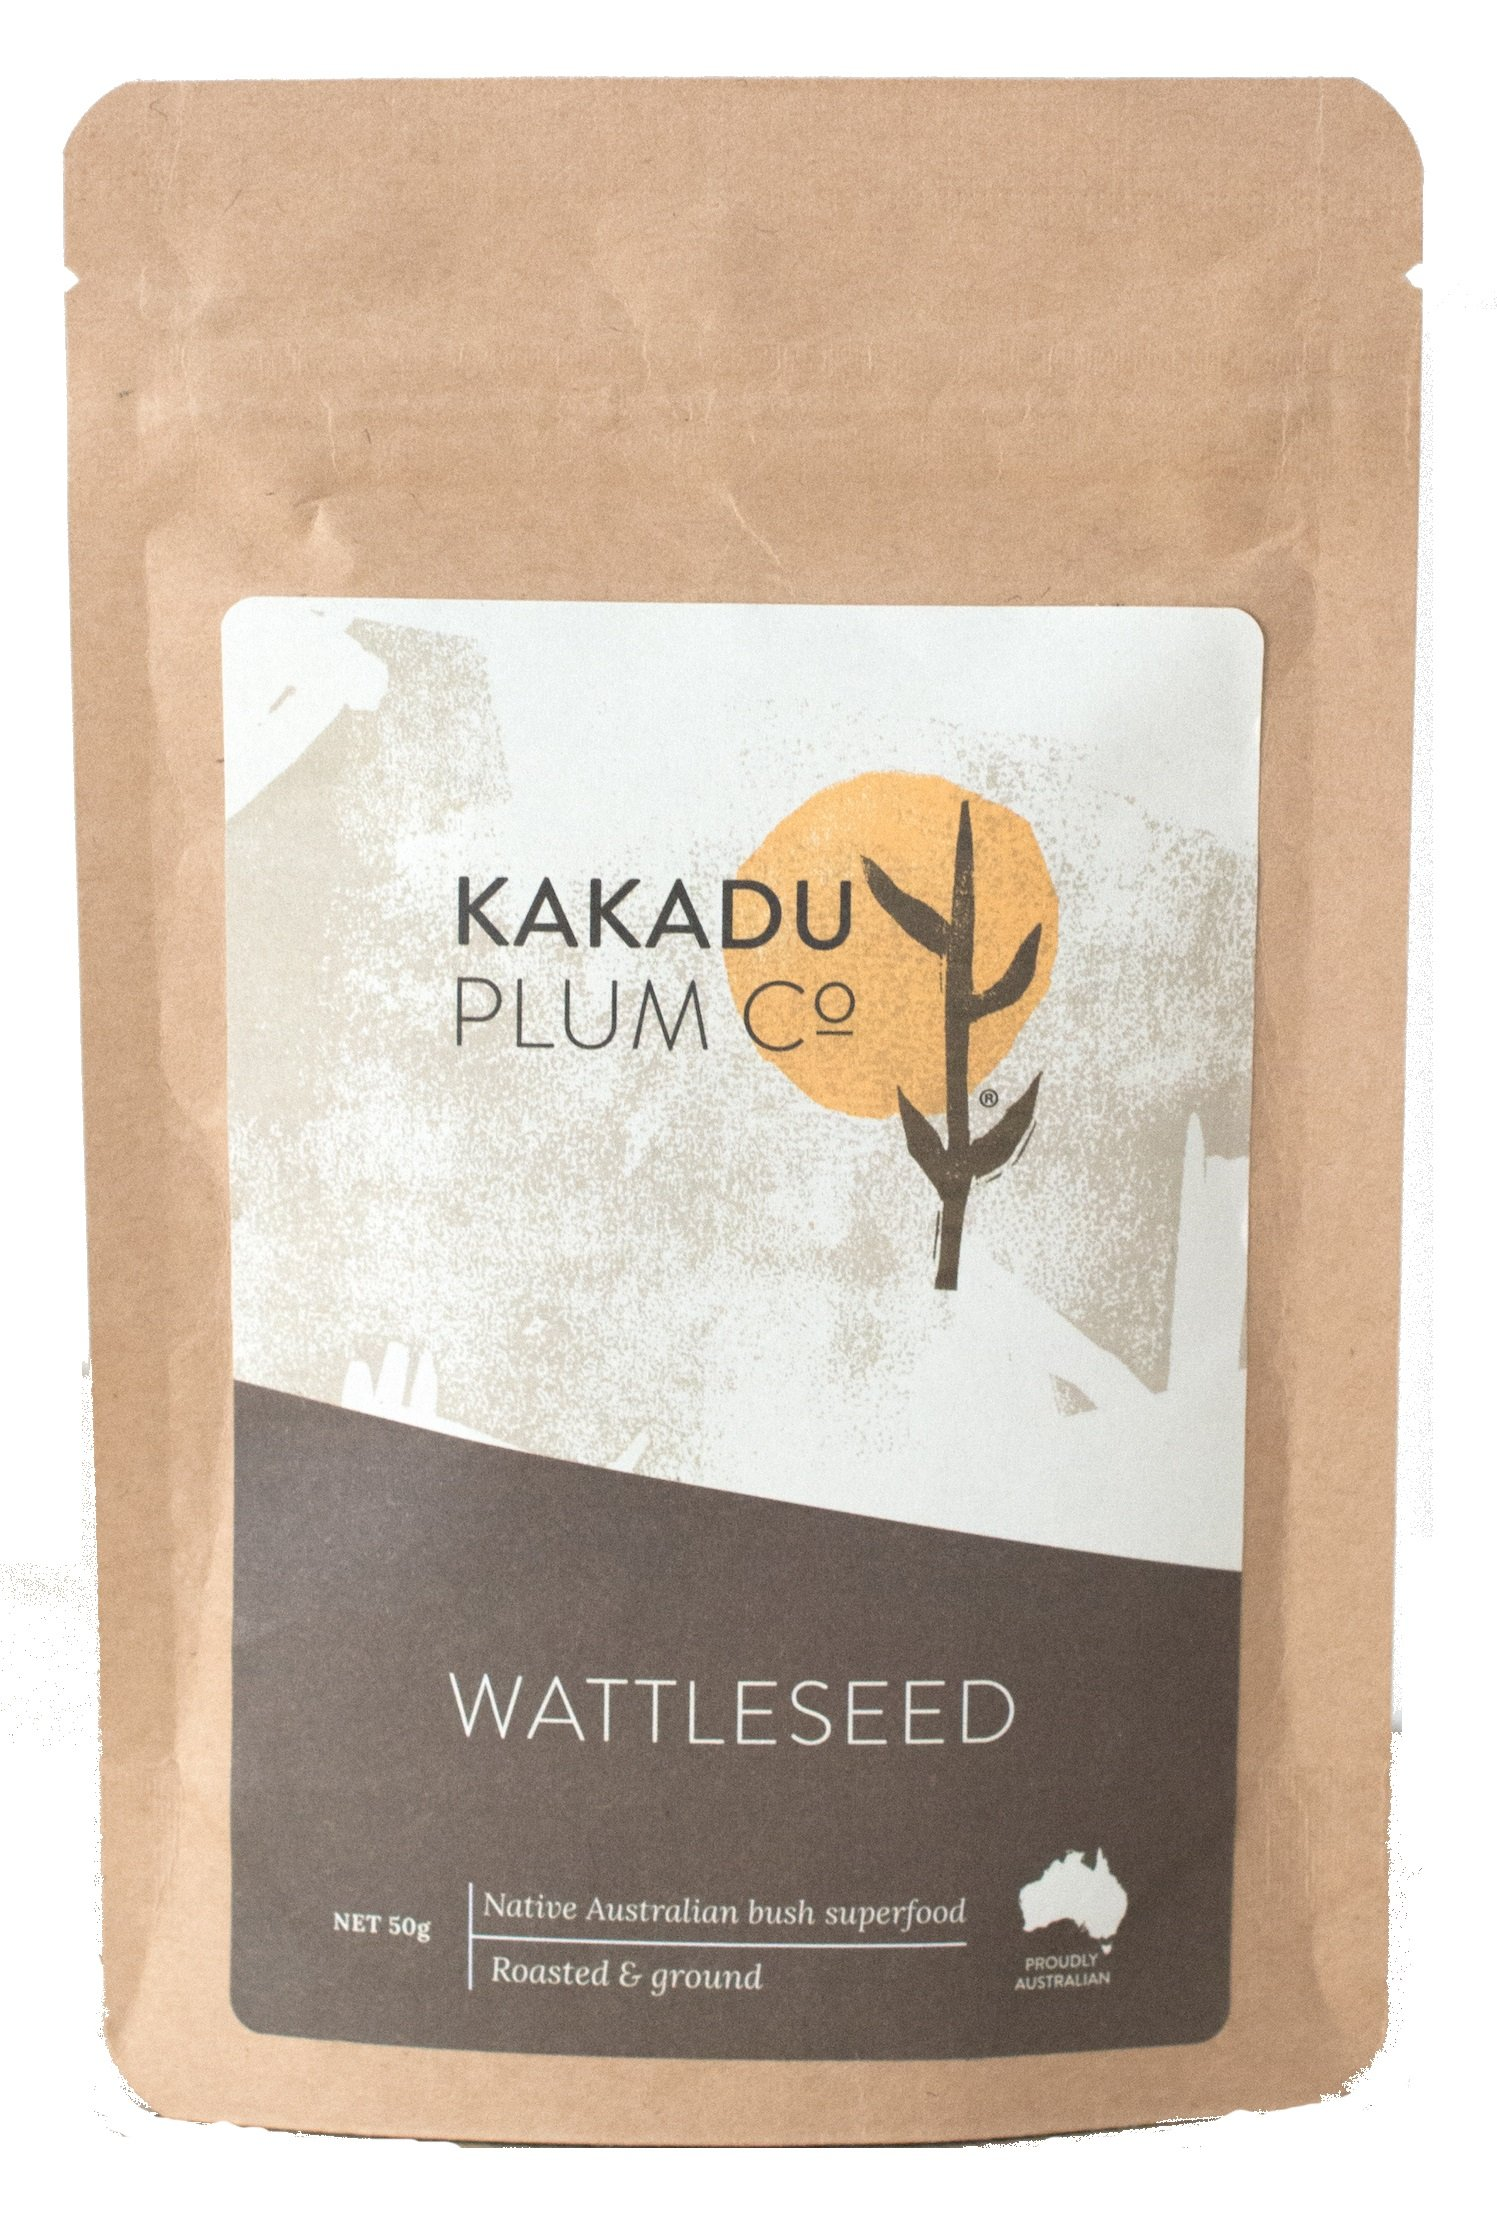 MaxRelief Kakadu Plum Wattleseed - Australian Aboriginal Superfood - Contains Magnesium, Potassium, Calcium, Iron, Selenium and Zinc. Use as a coffee substitute 1.8 oz